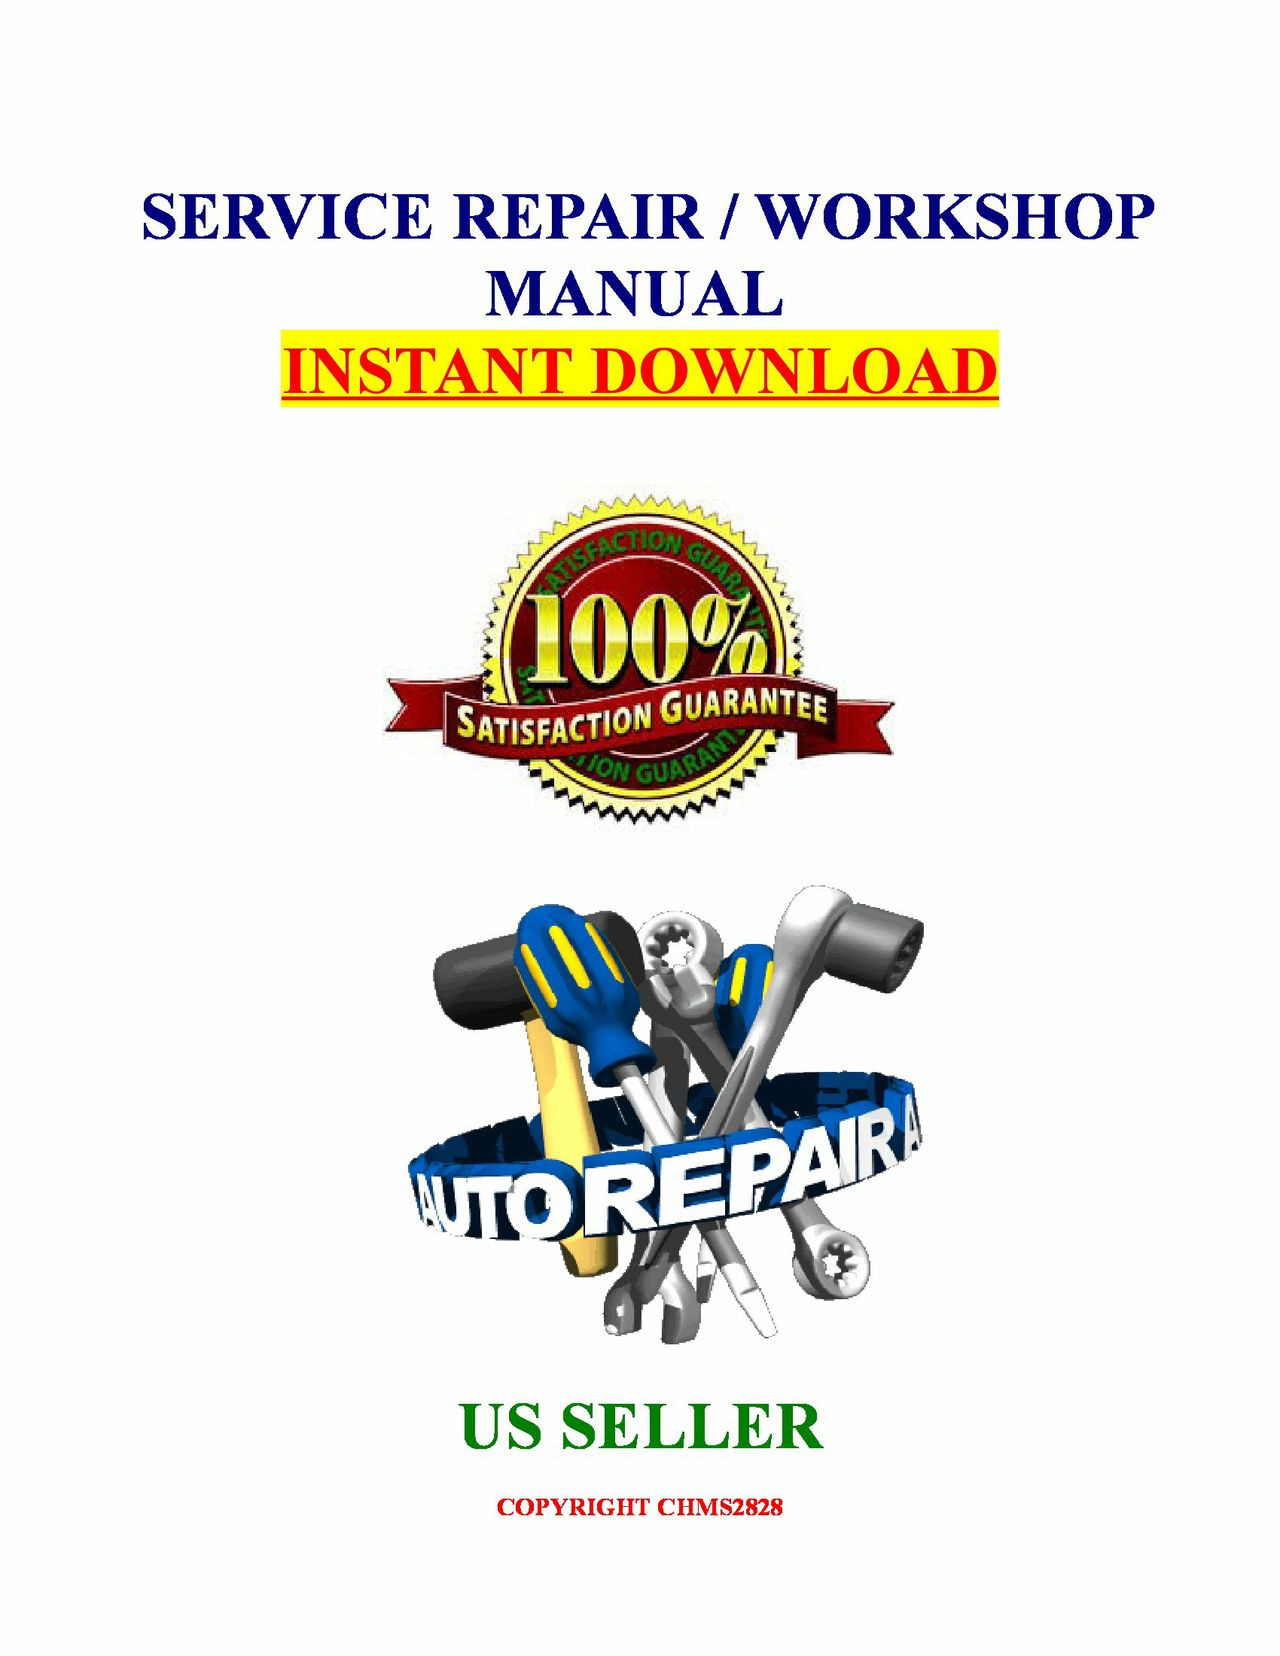 Polaris ranger xp 700 4x4 6x6 2005 thru 2011 atv servi polaris ranger xp 700 4x4 6x6 2005 thru 2011 atv service repair manual sciox Choice Image